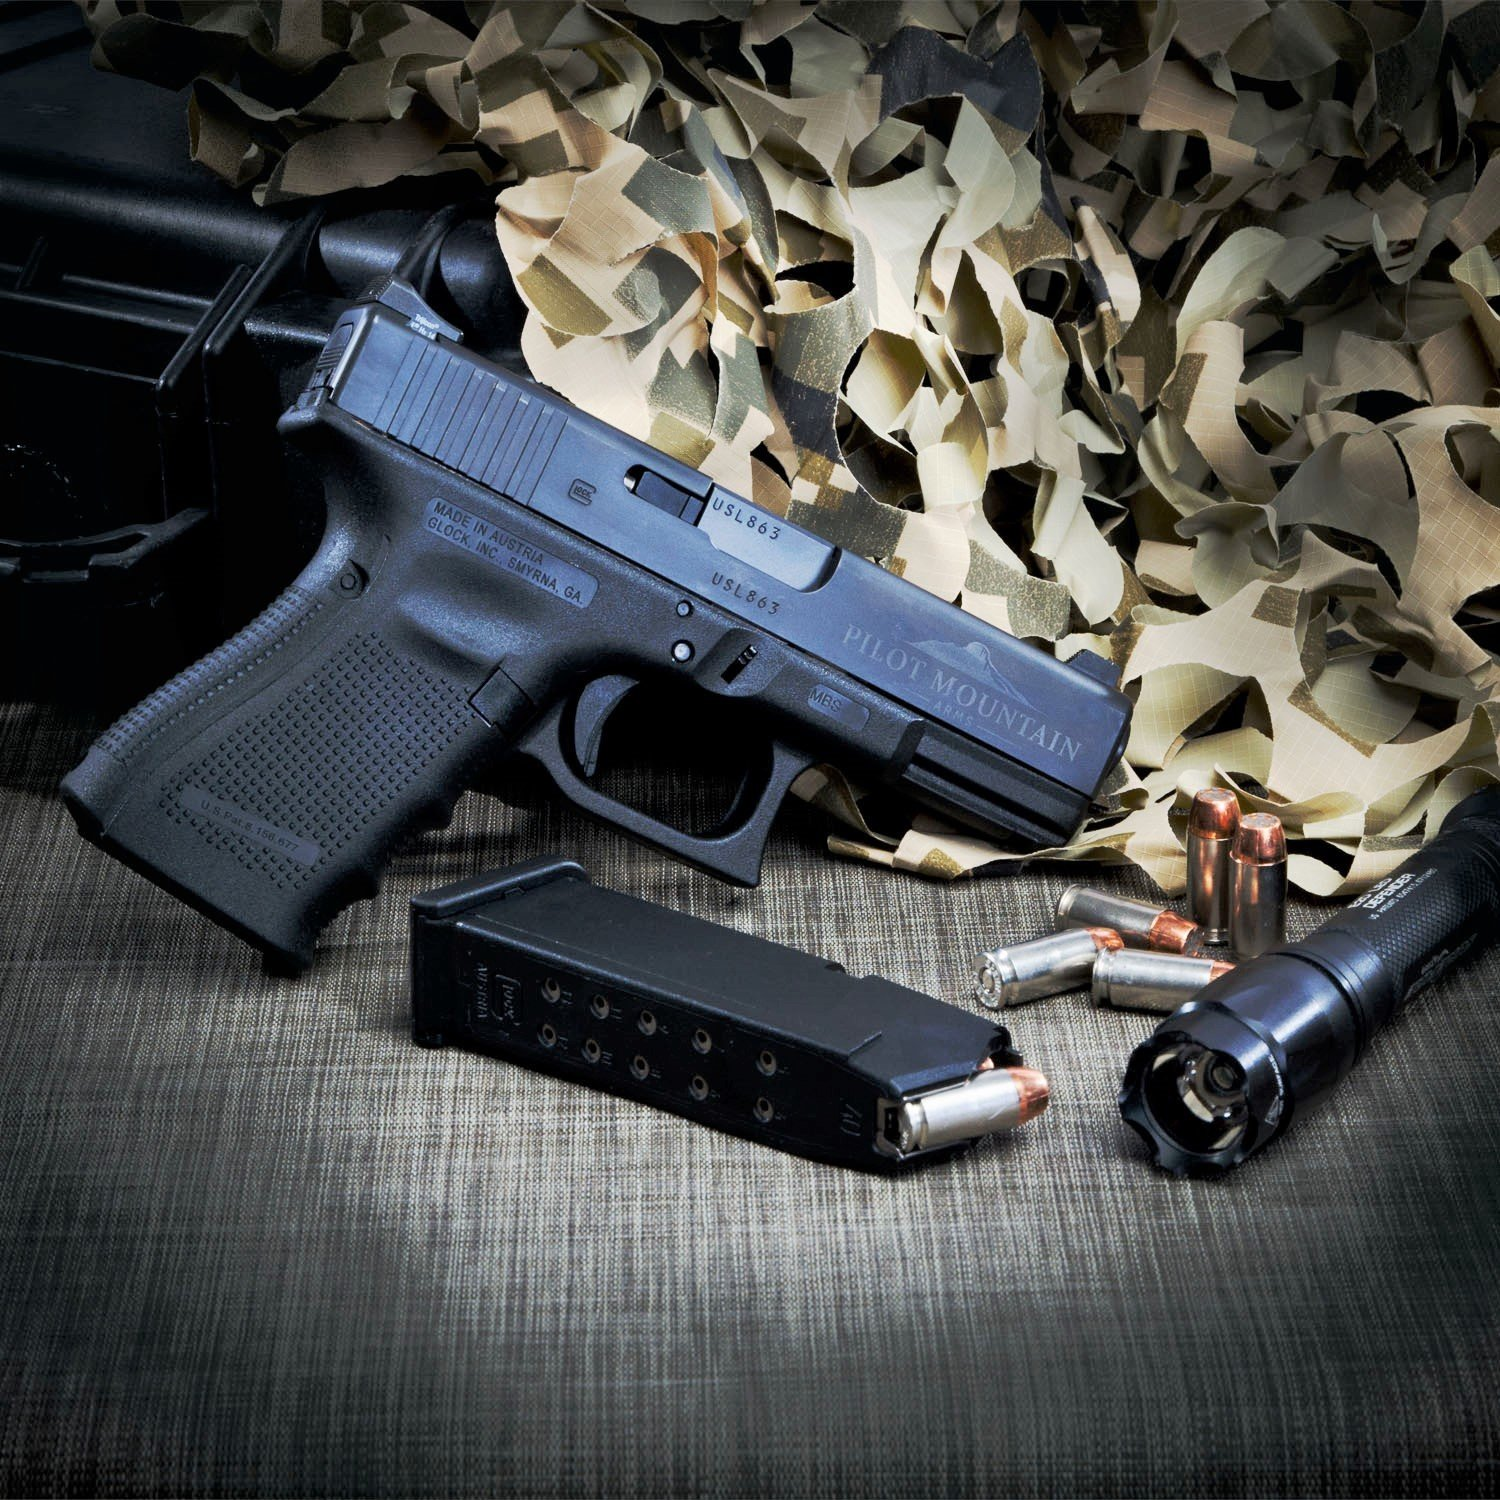 Pilot Mountain Arms Concealed Carry Model, GLOCK® 19/23 Pistol